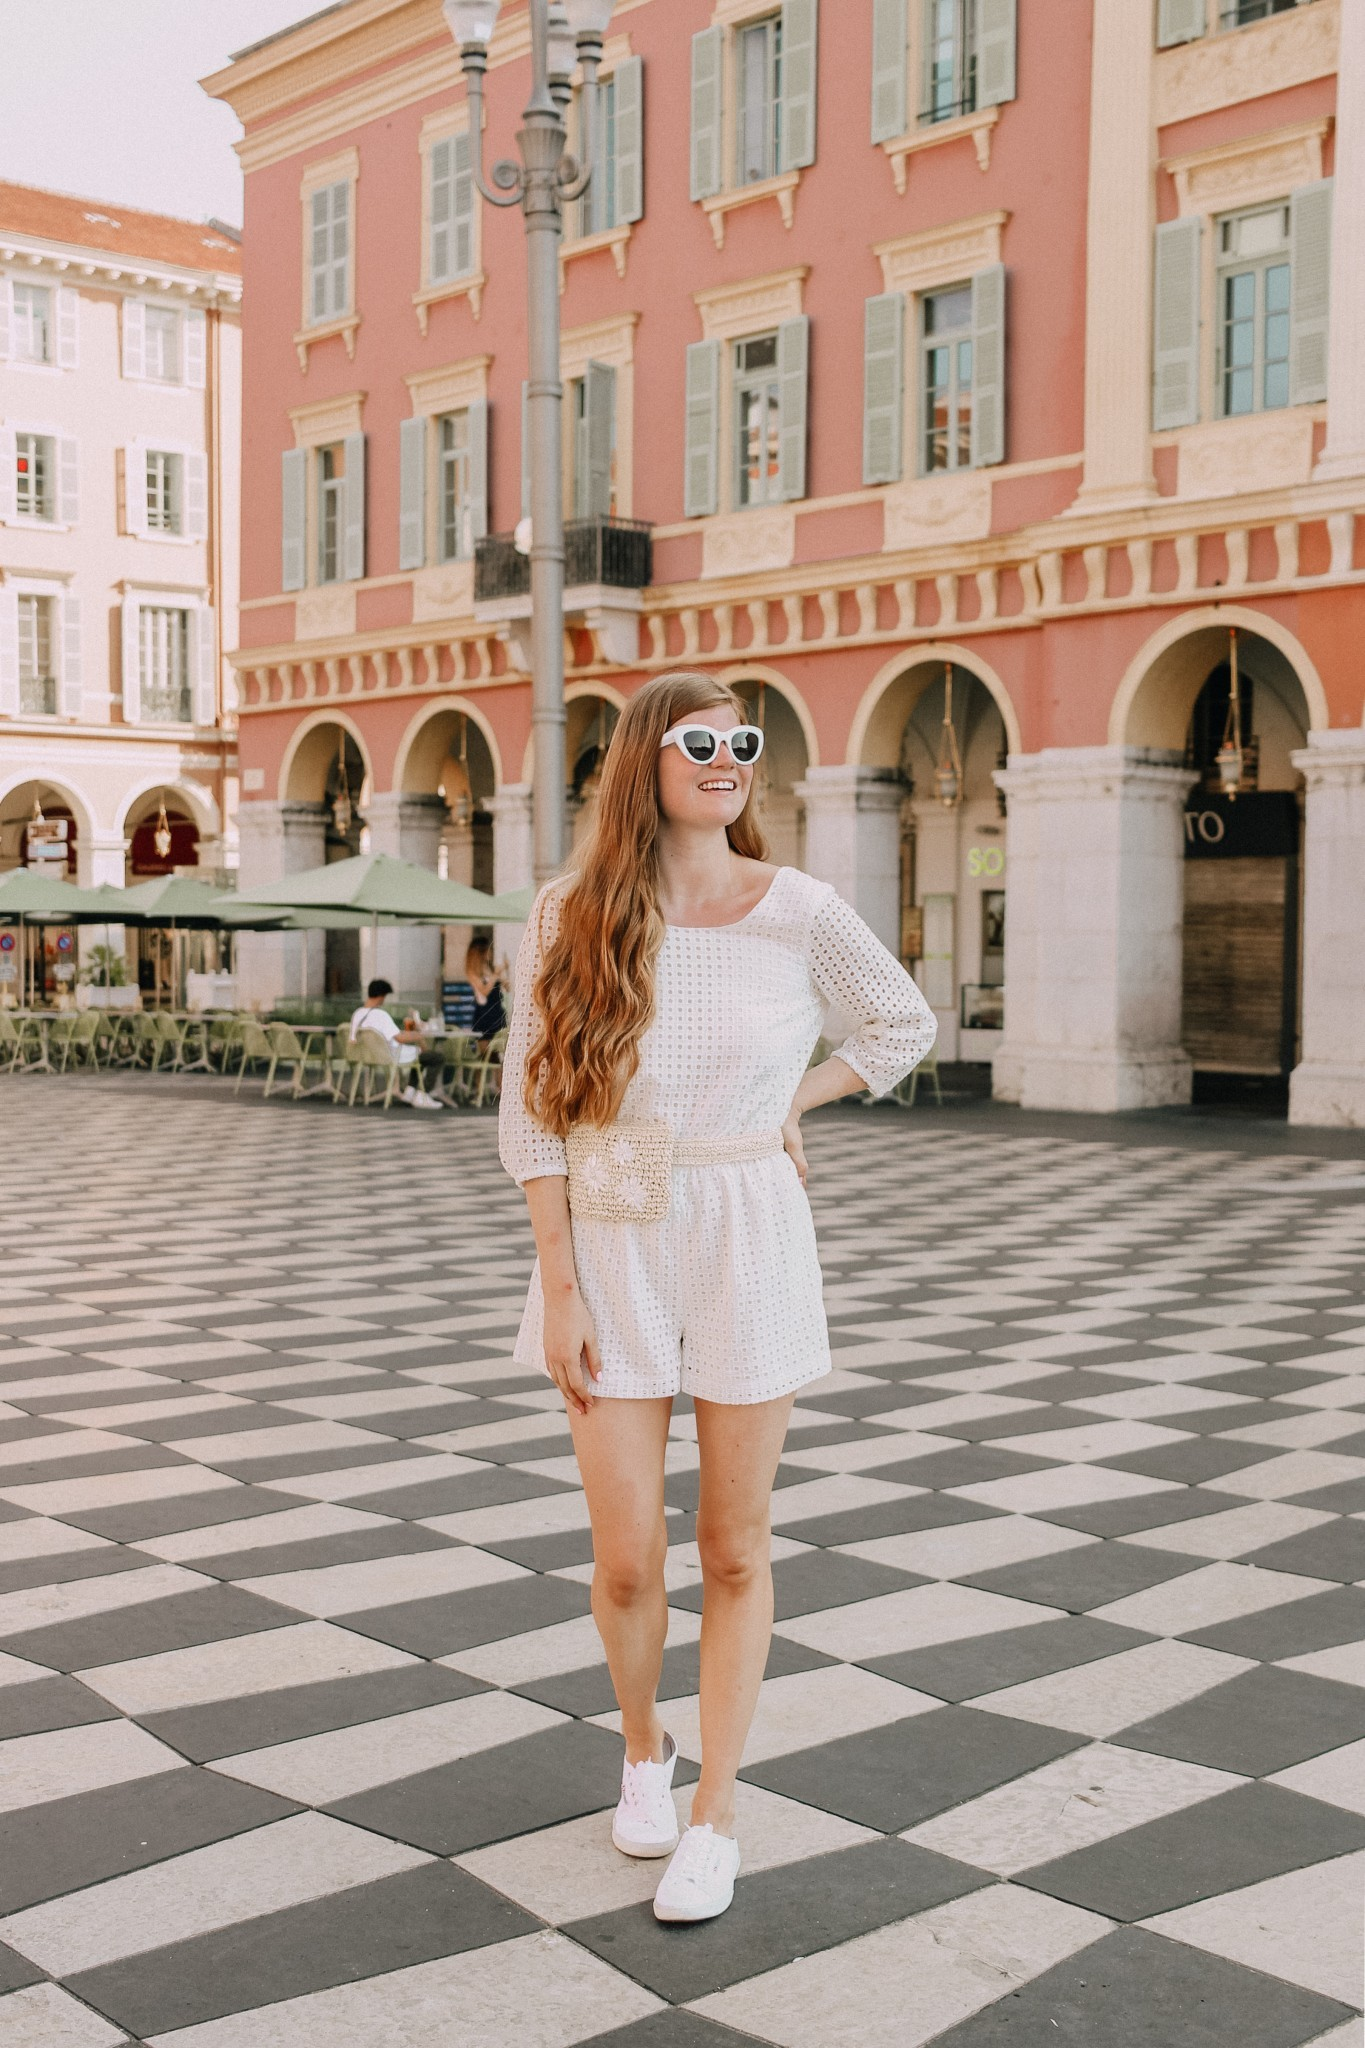 Popular London lifestyle blogger Mollie Moore shares photos from Place Massena Nice